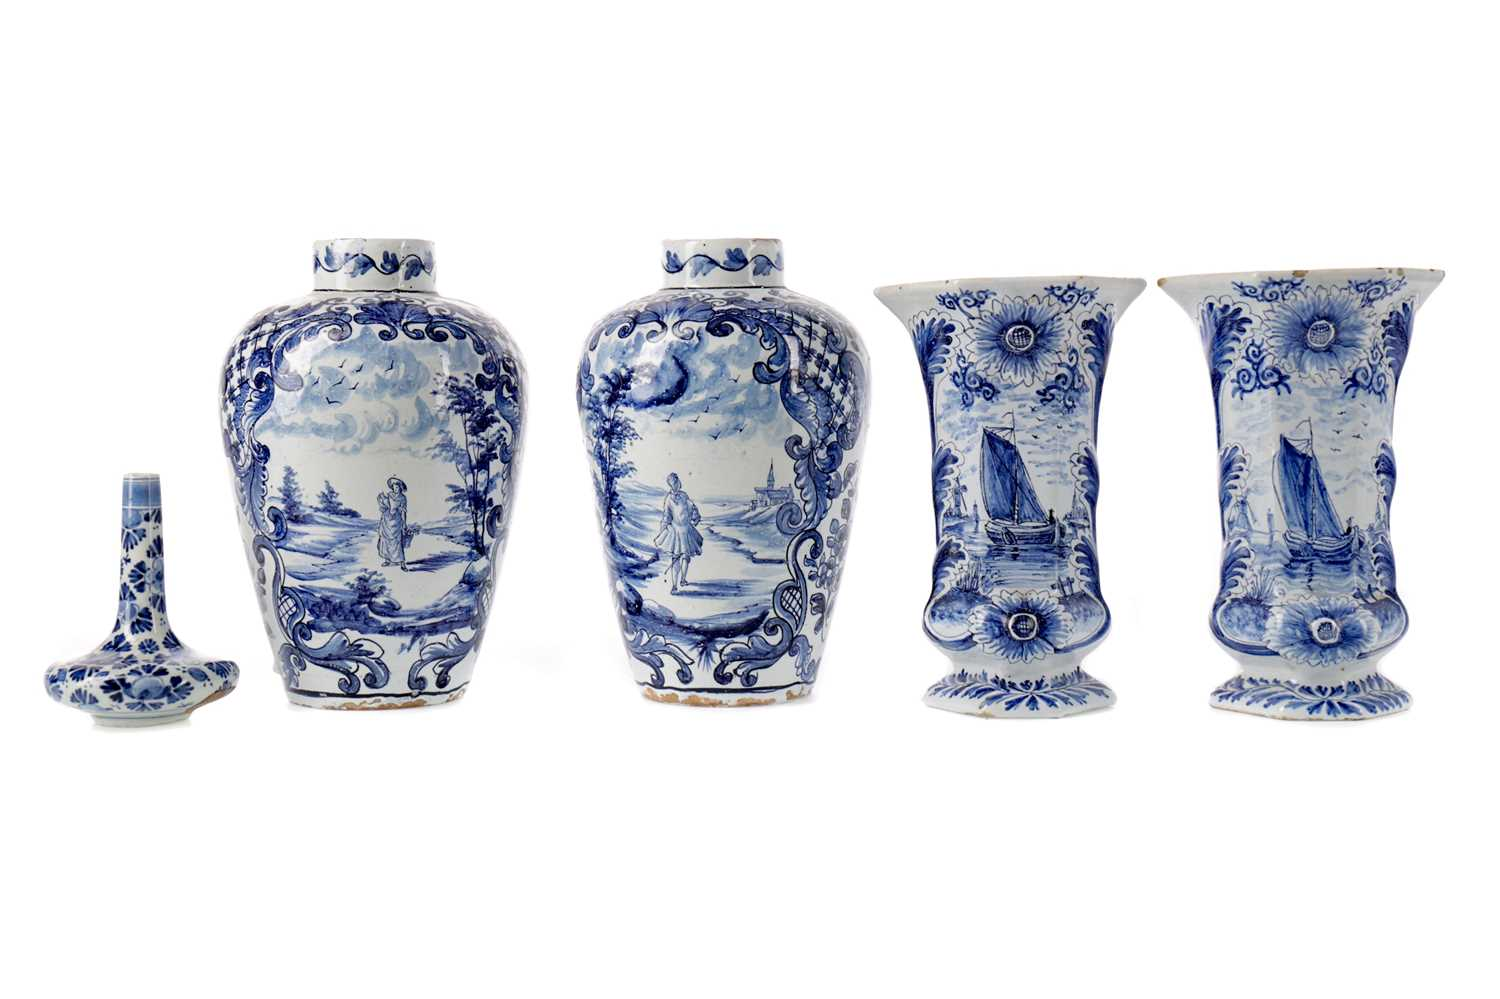 Lot 80 - A LATE 19TH CENTURY DUTCH DELFTWARE BLUE & WHITE SOLIFLEUR VASE, ALONG WITH TWO PAIRS OF VASES